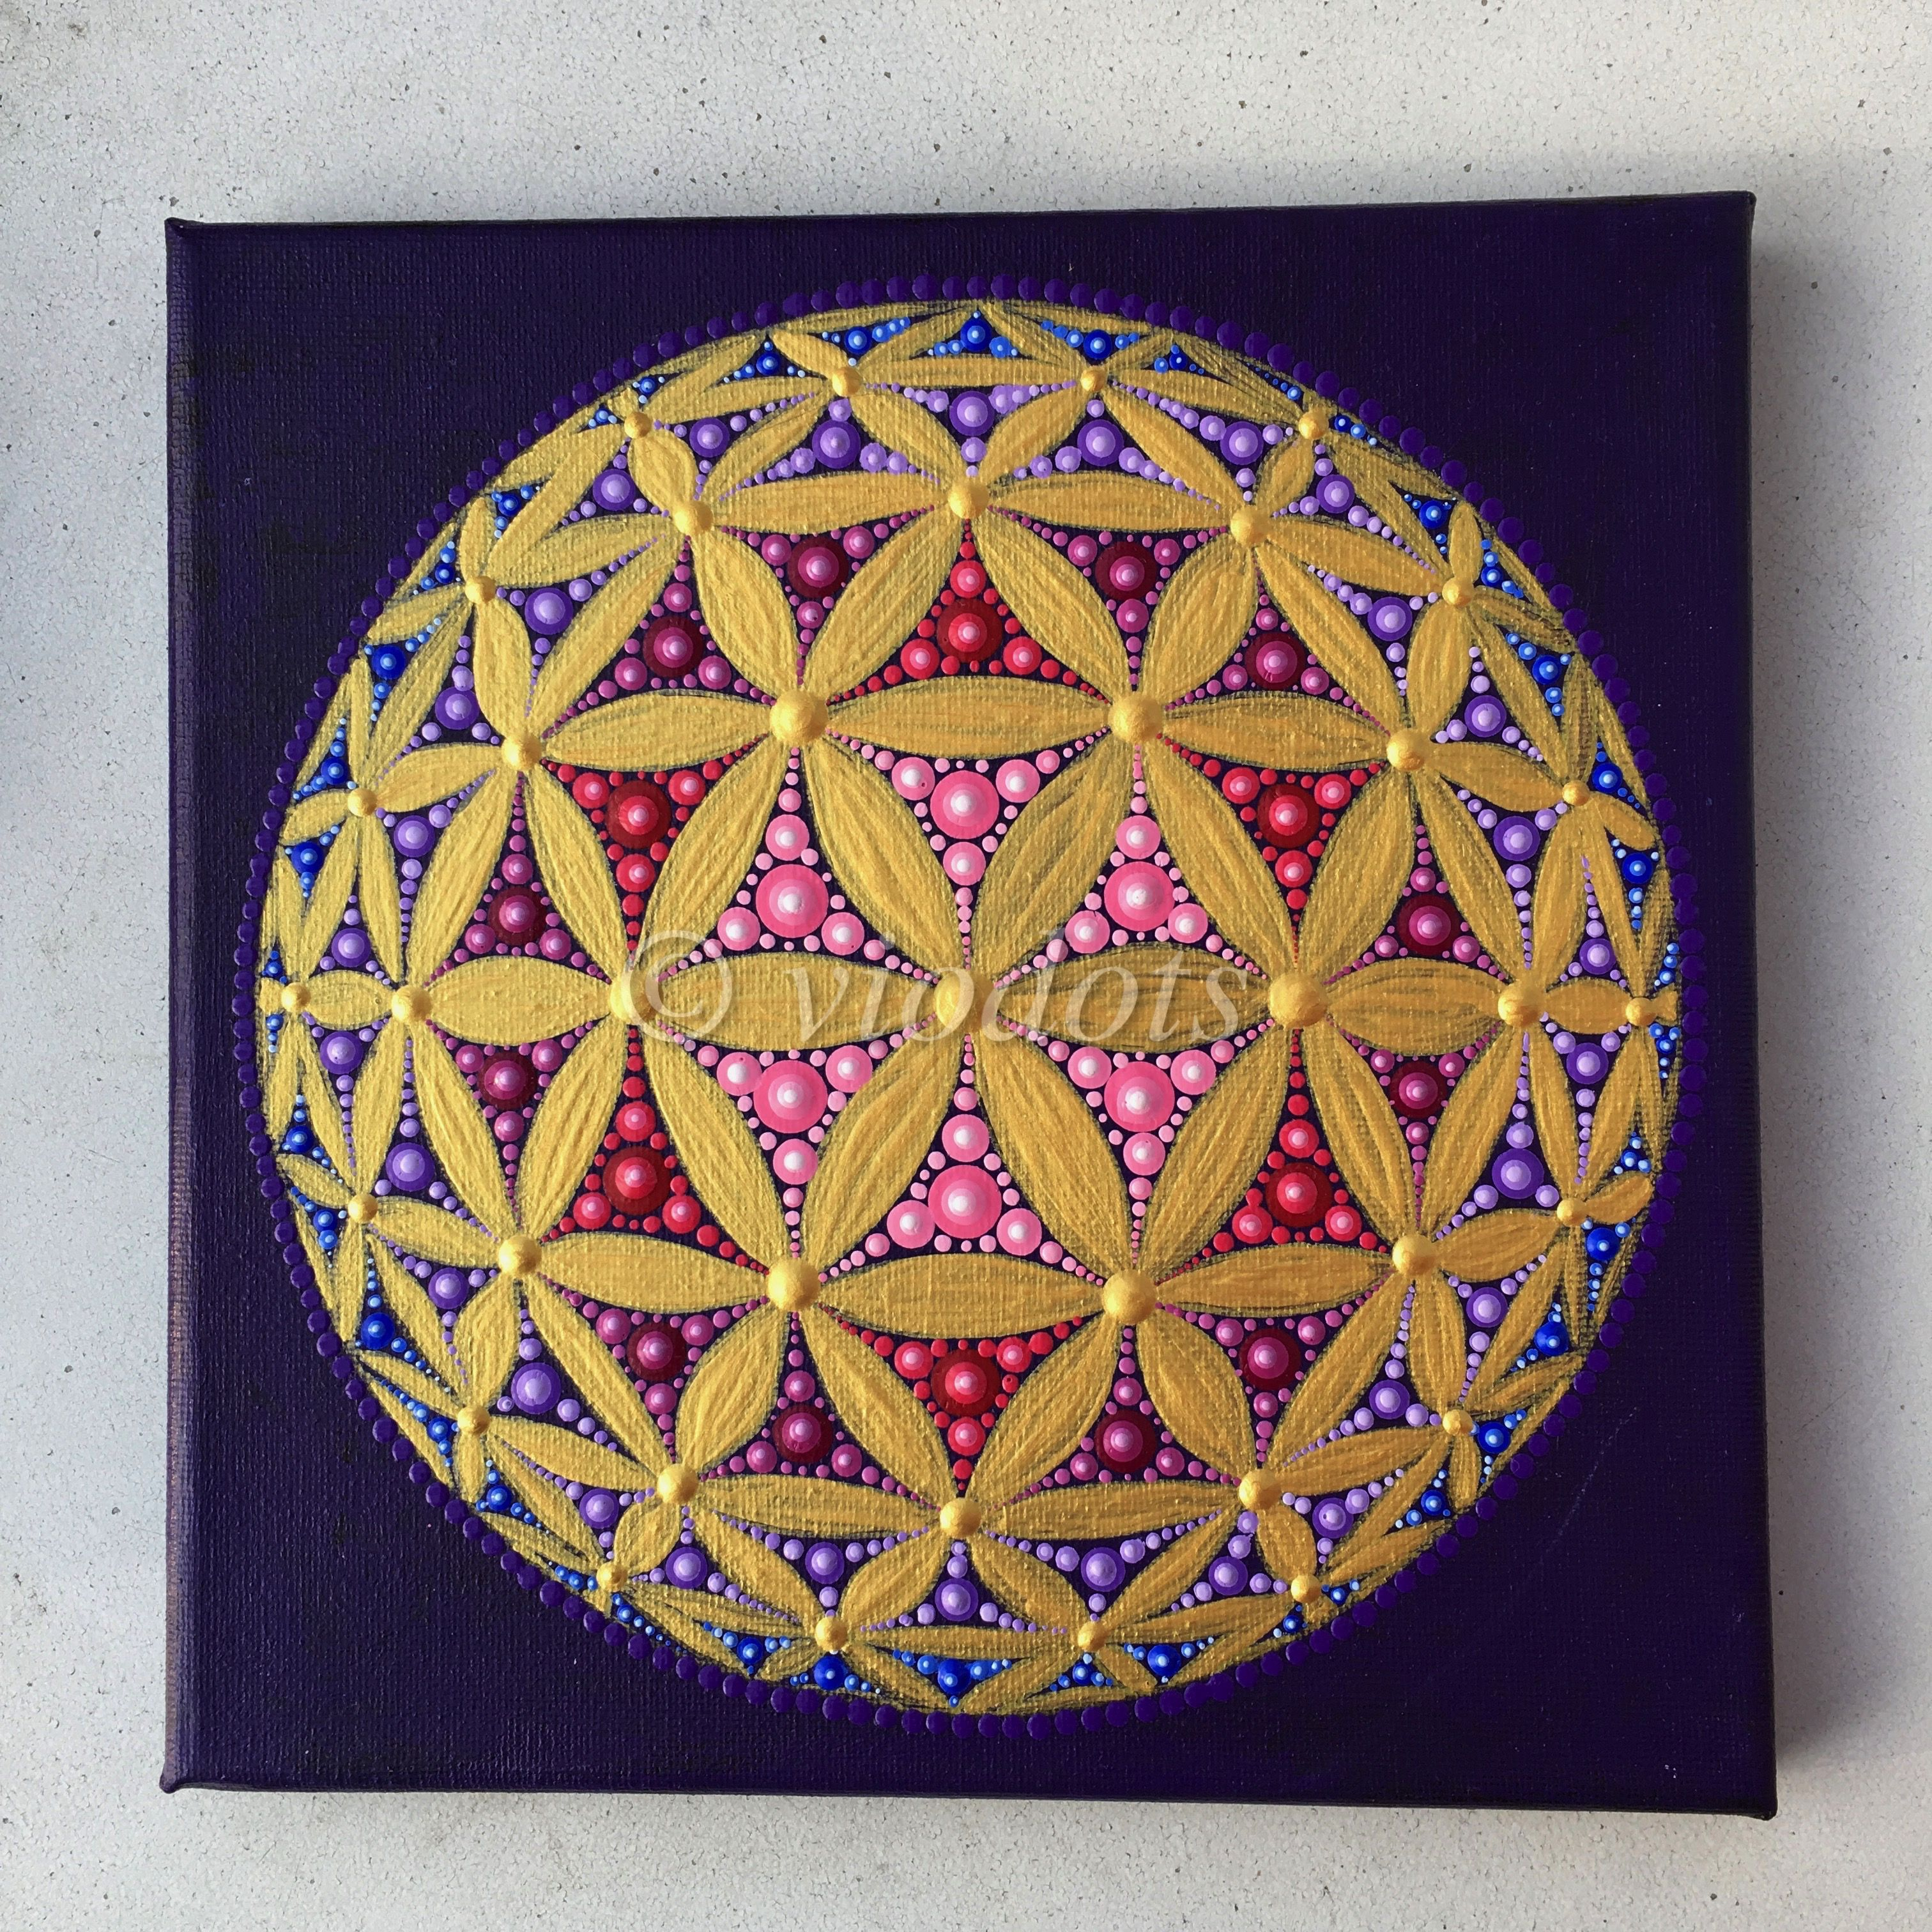 Stein Fliesen Bemalen Original Painting Dot Painting Flower Of Life 3d Malen